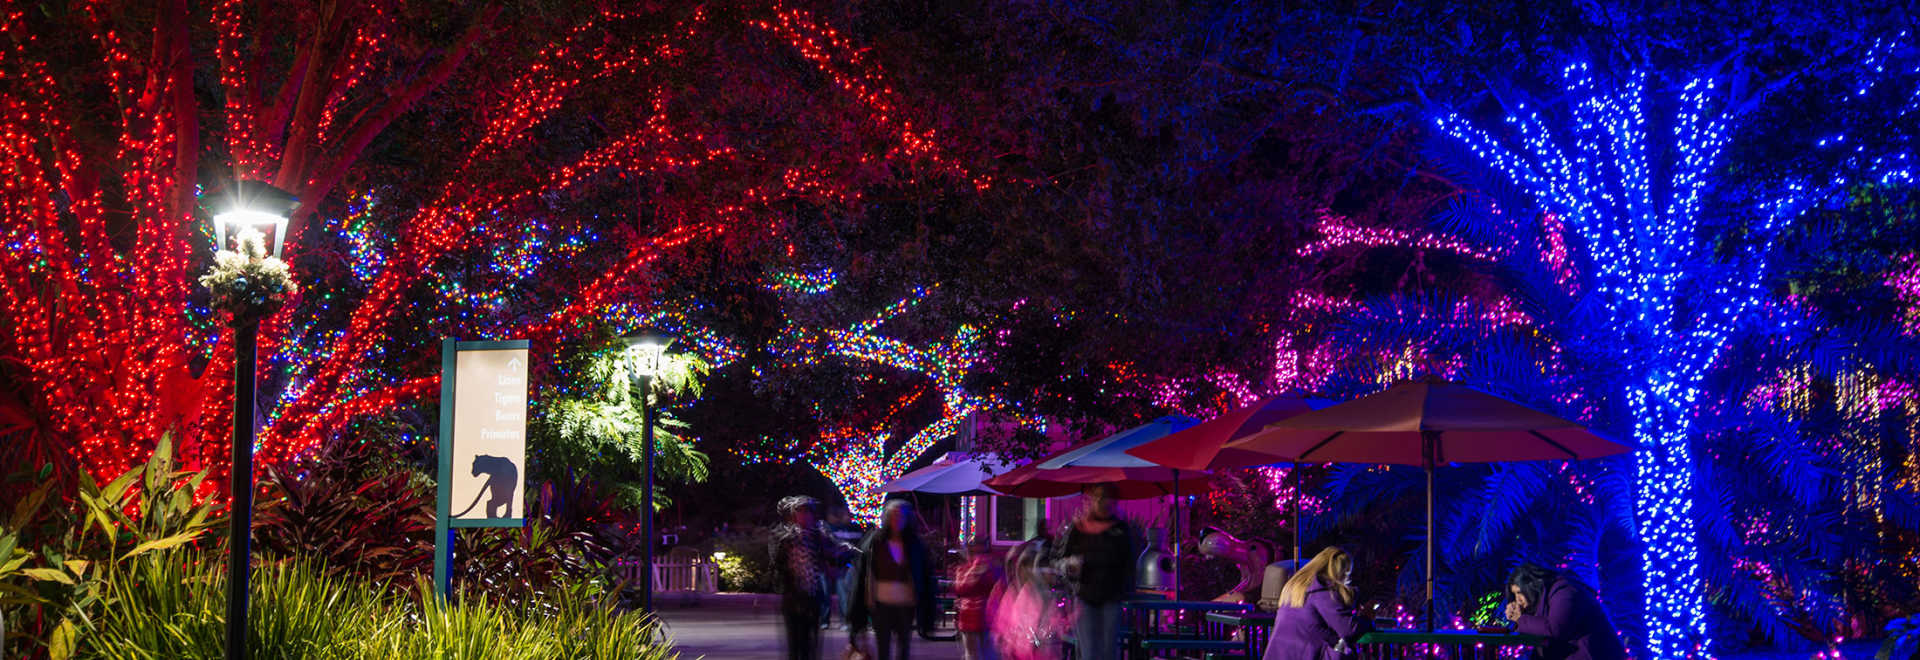 Holiday Lights in Houston | Best Christmas Display Spots